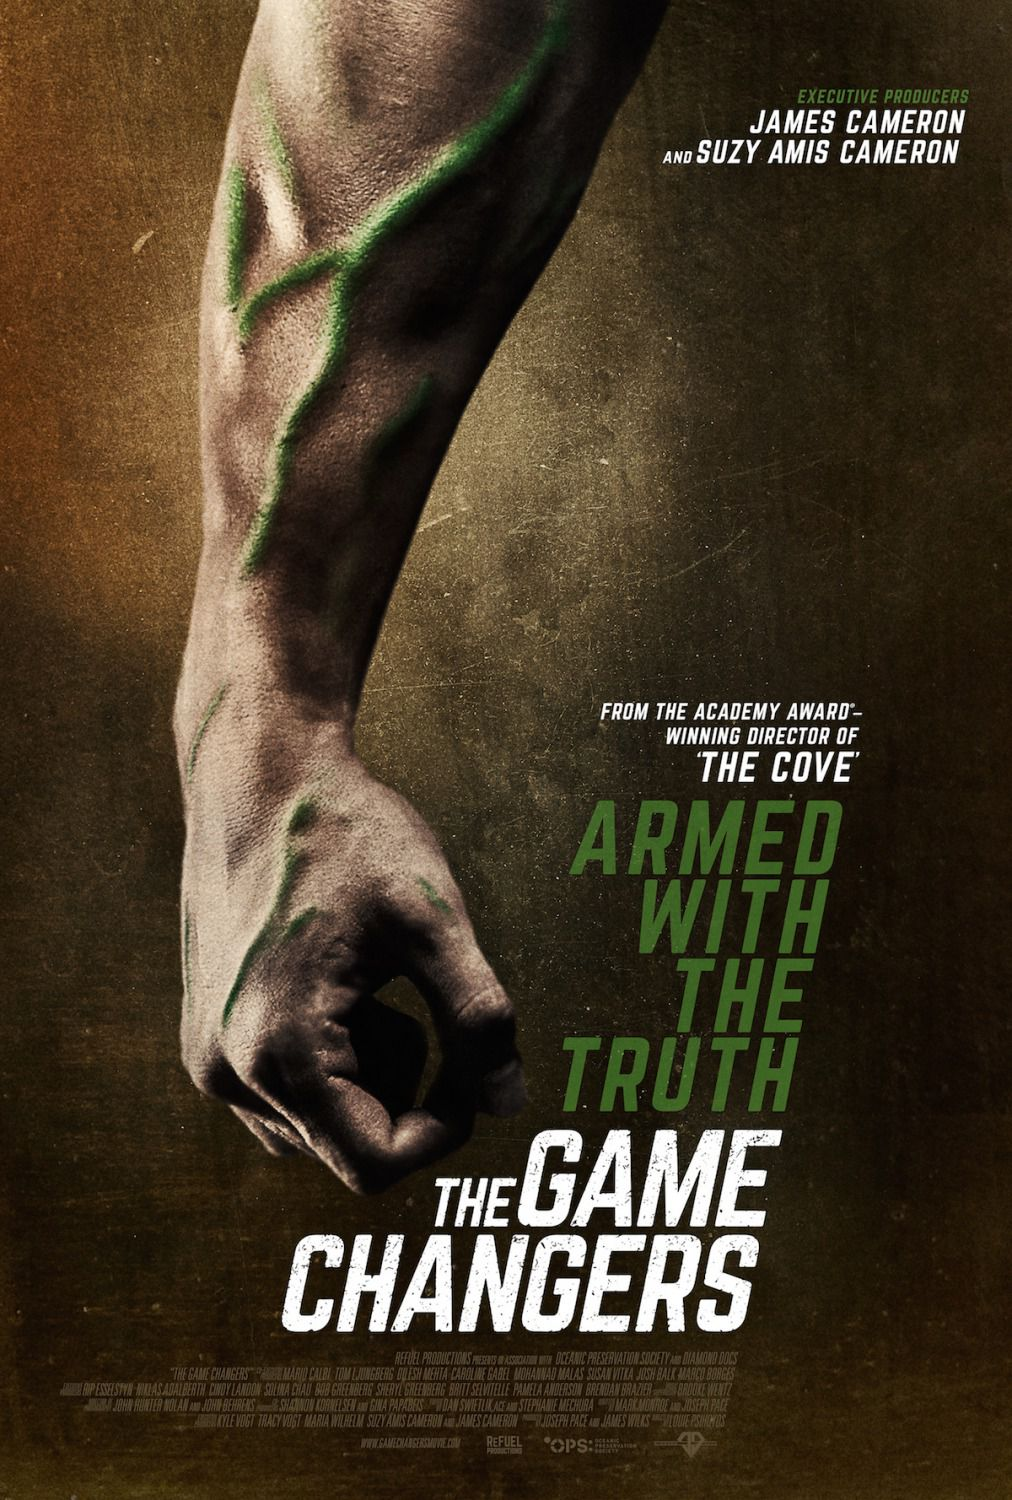 he Game Changers - Armed with the Truth - film poster 2018